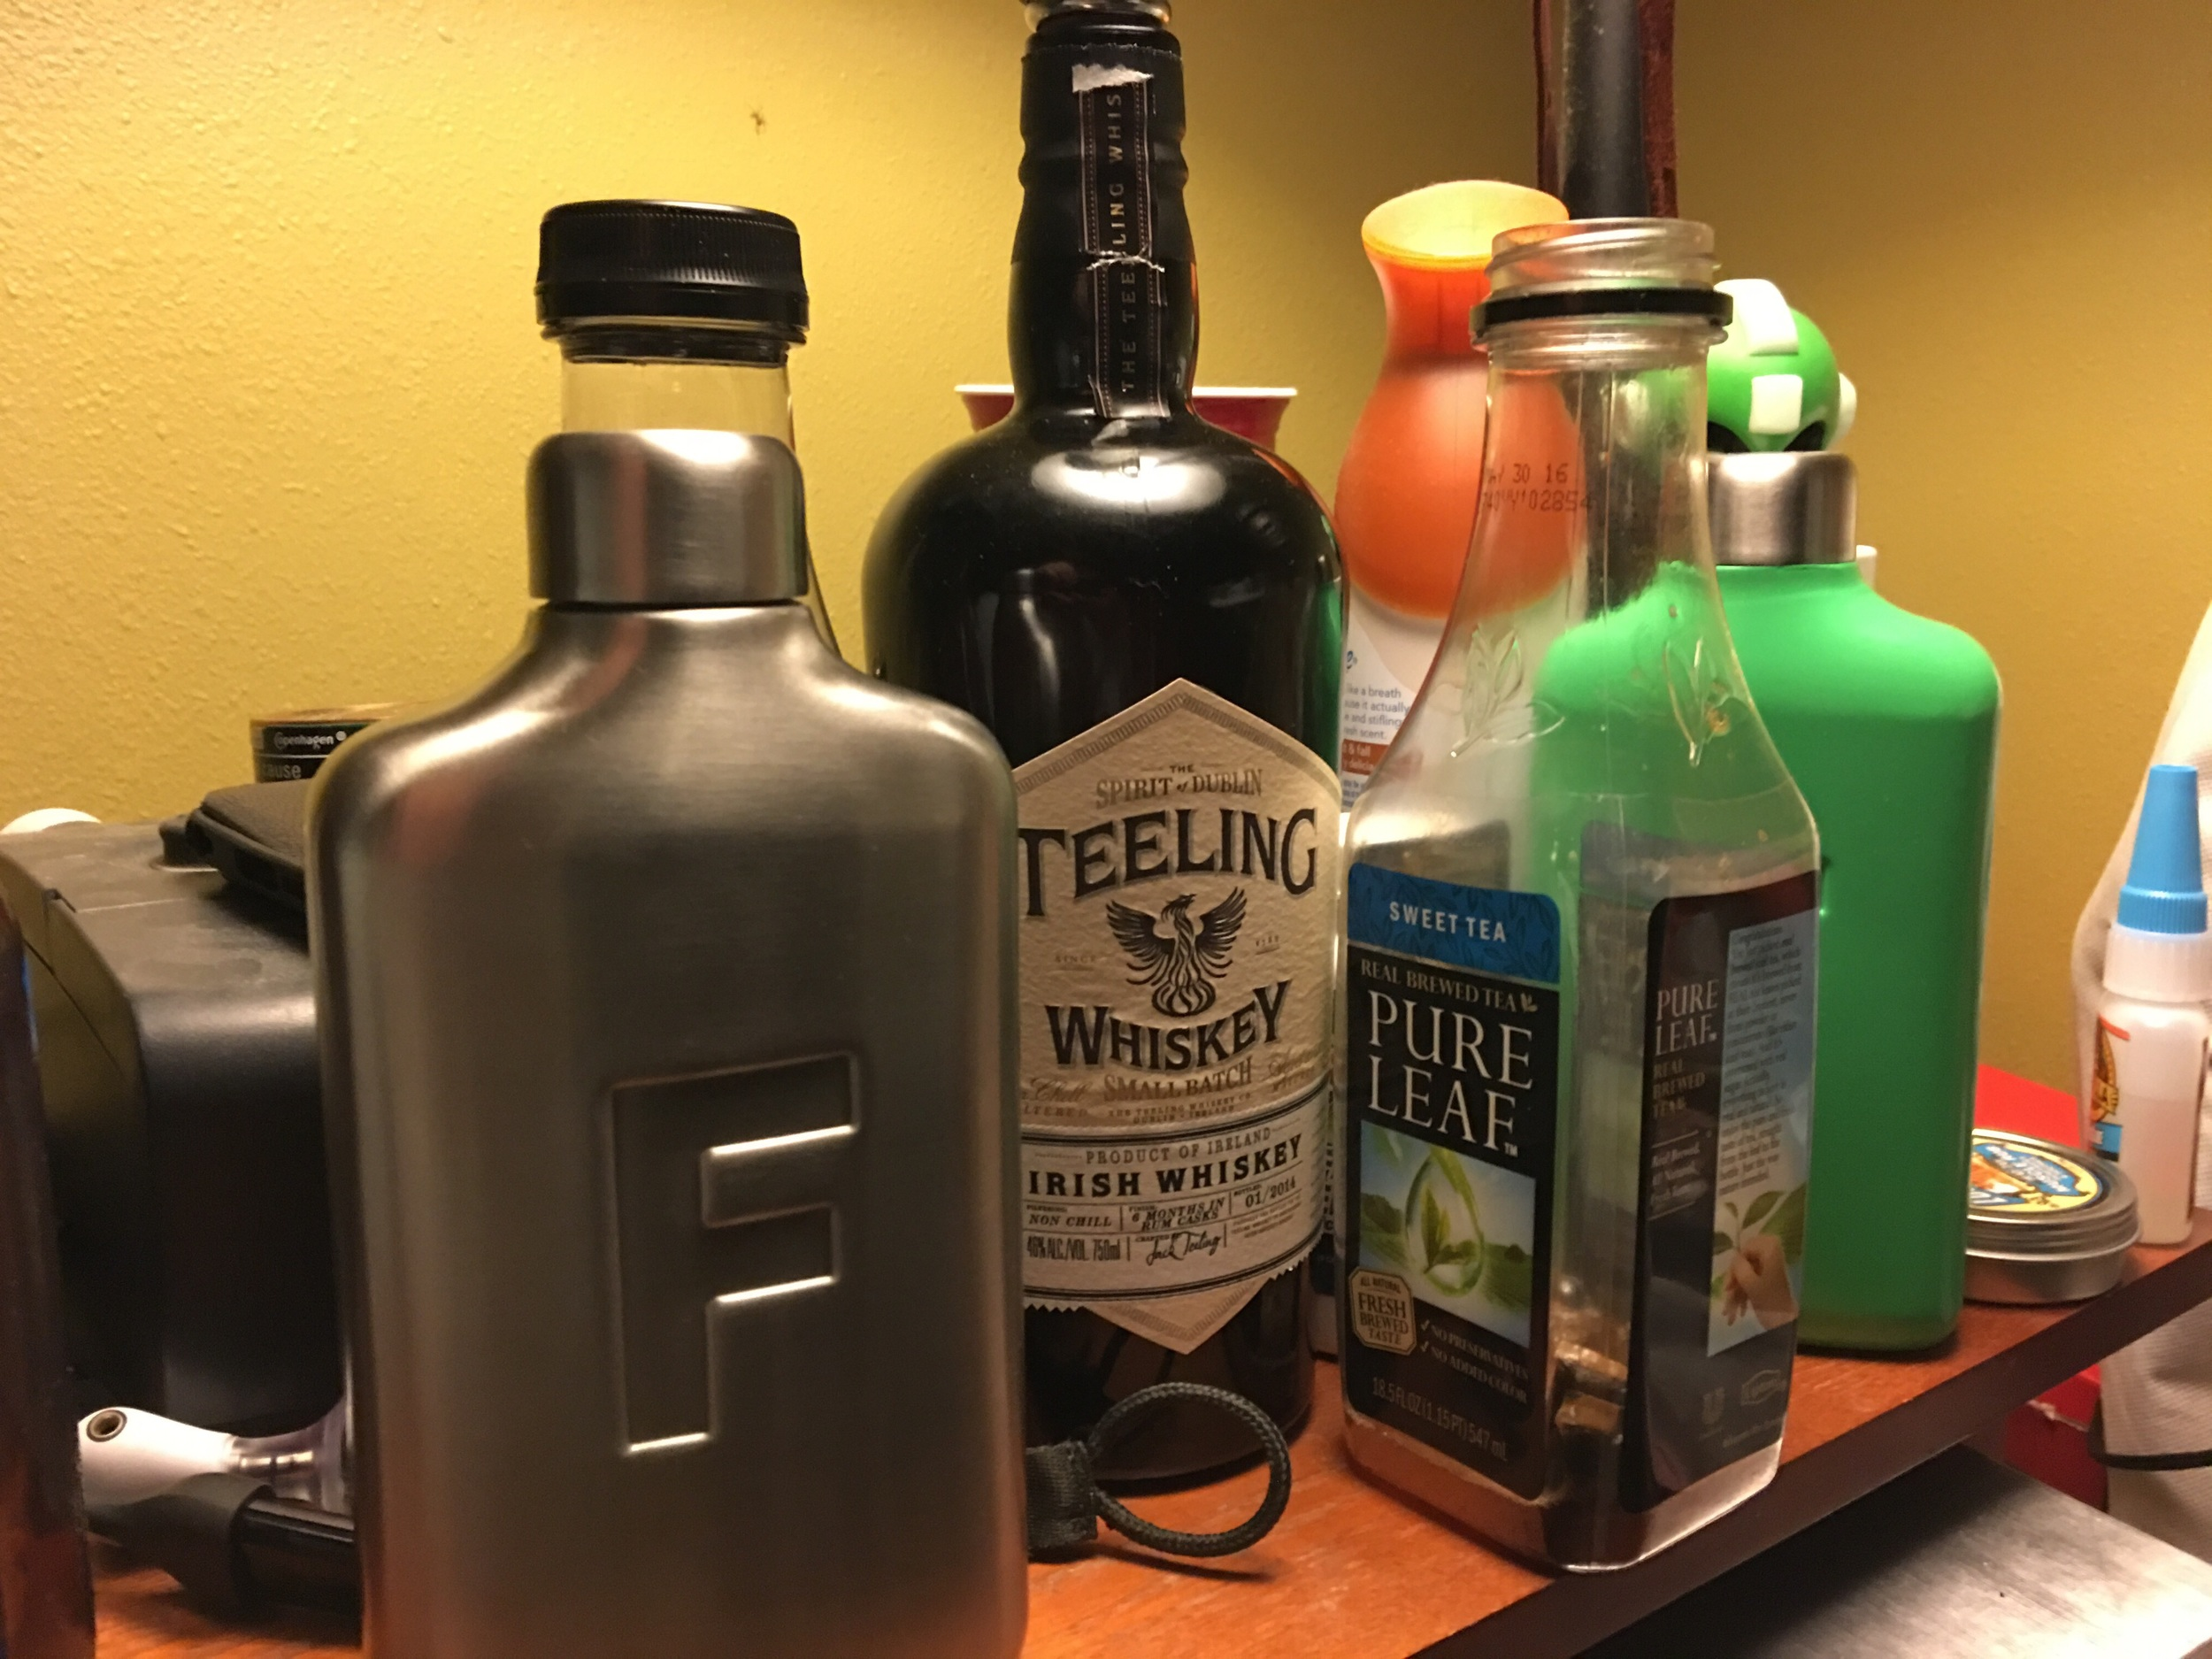 I know it looks like a problem, but the flasks in this picture are water bottles from FRED Flask.  Look for a full review of them soon.